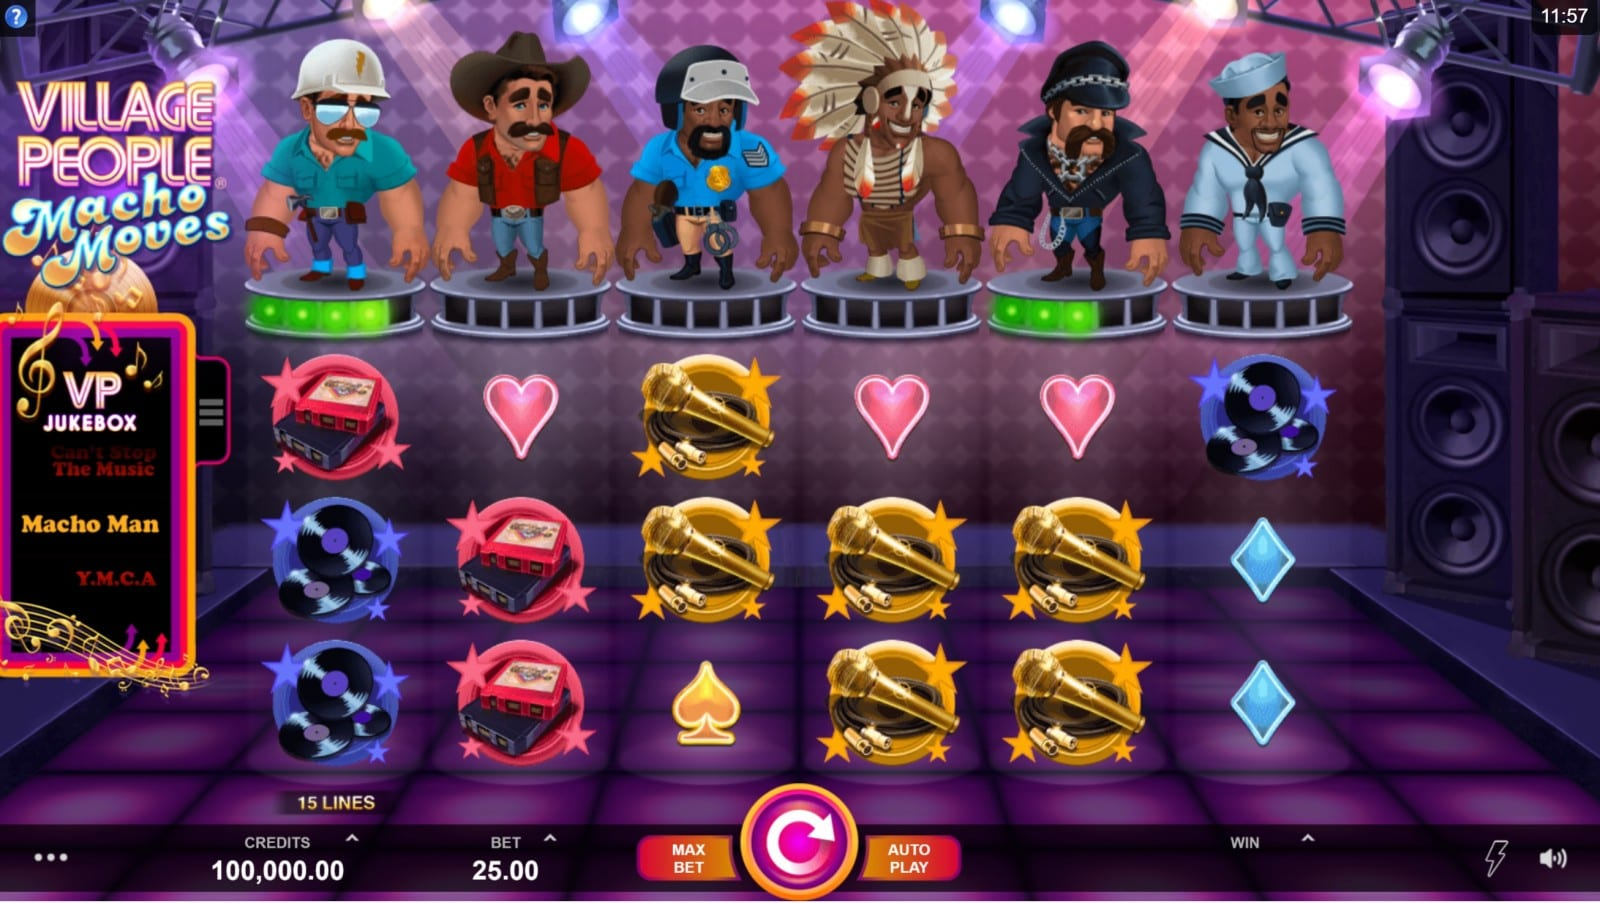 Village People - Macho Moves Slots review